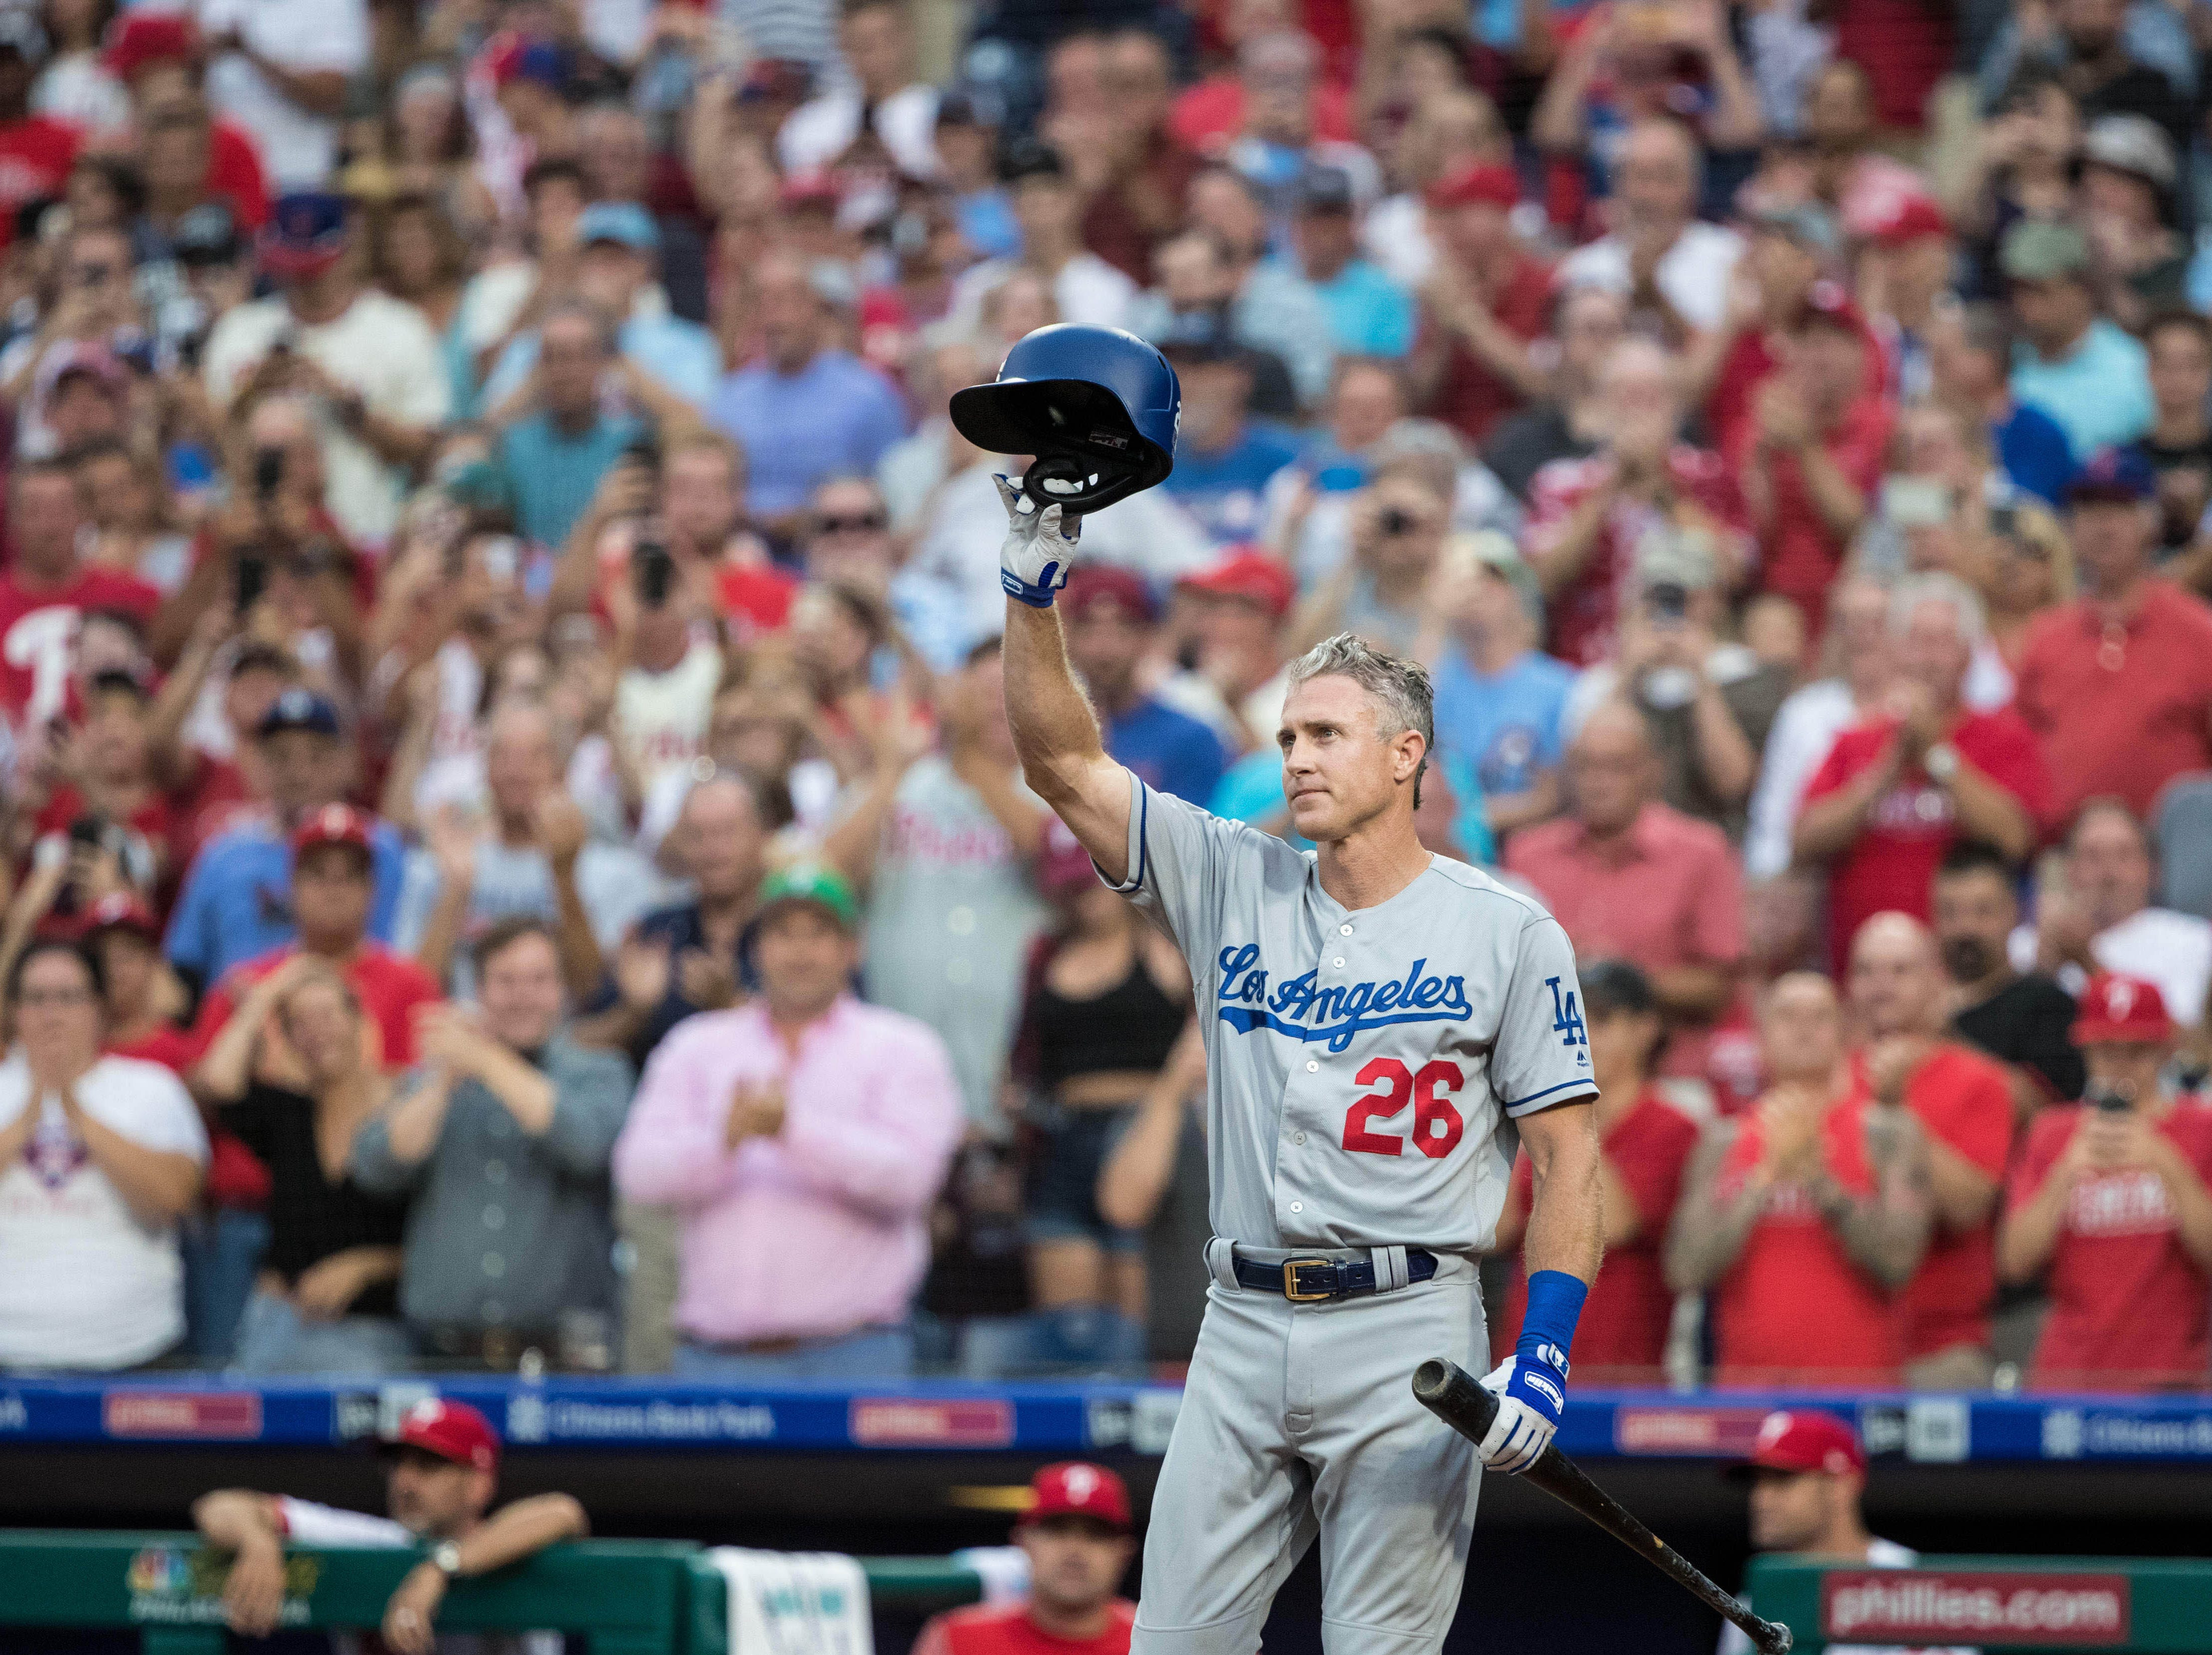 July 23: Los Angeles Dodgers second baseman Chase Utley tips his hat at the plate as he receives a standing ovation during the second inning against the Philadelphia Phillies at Citizens Bank Park.